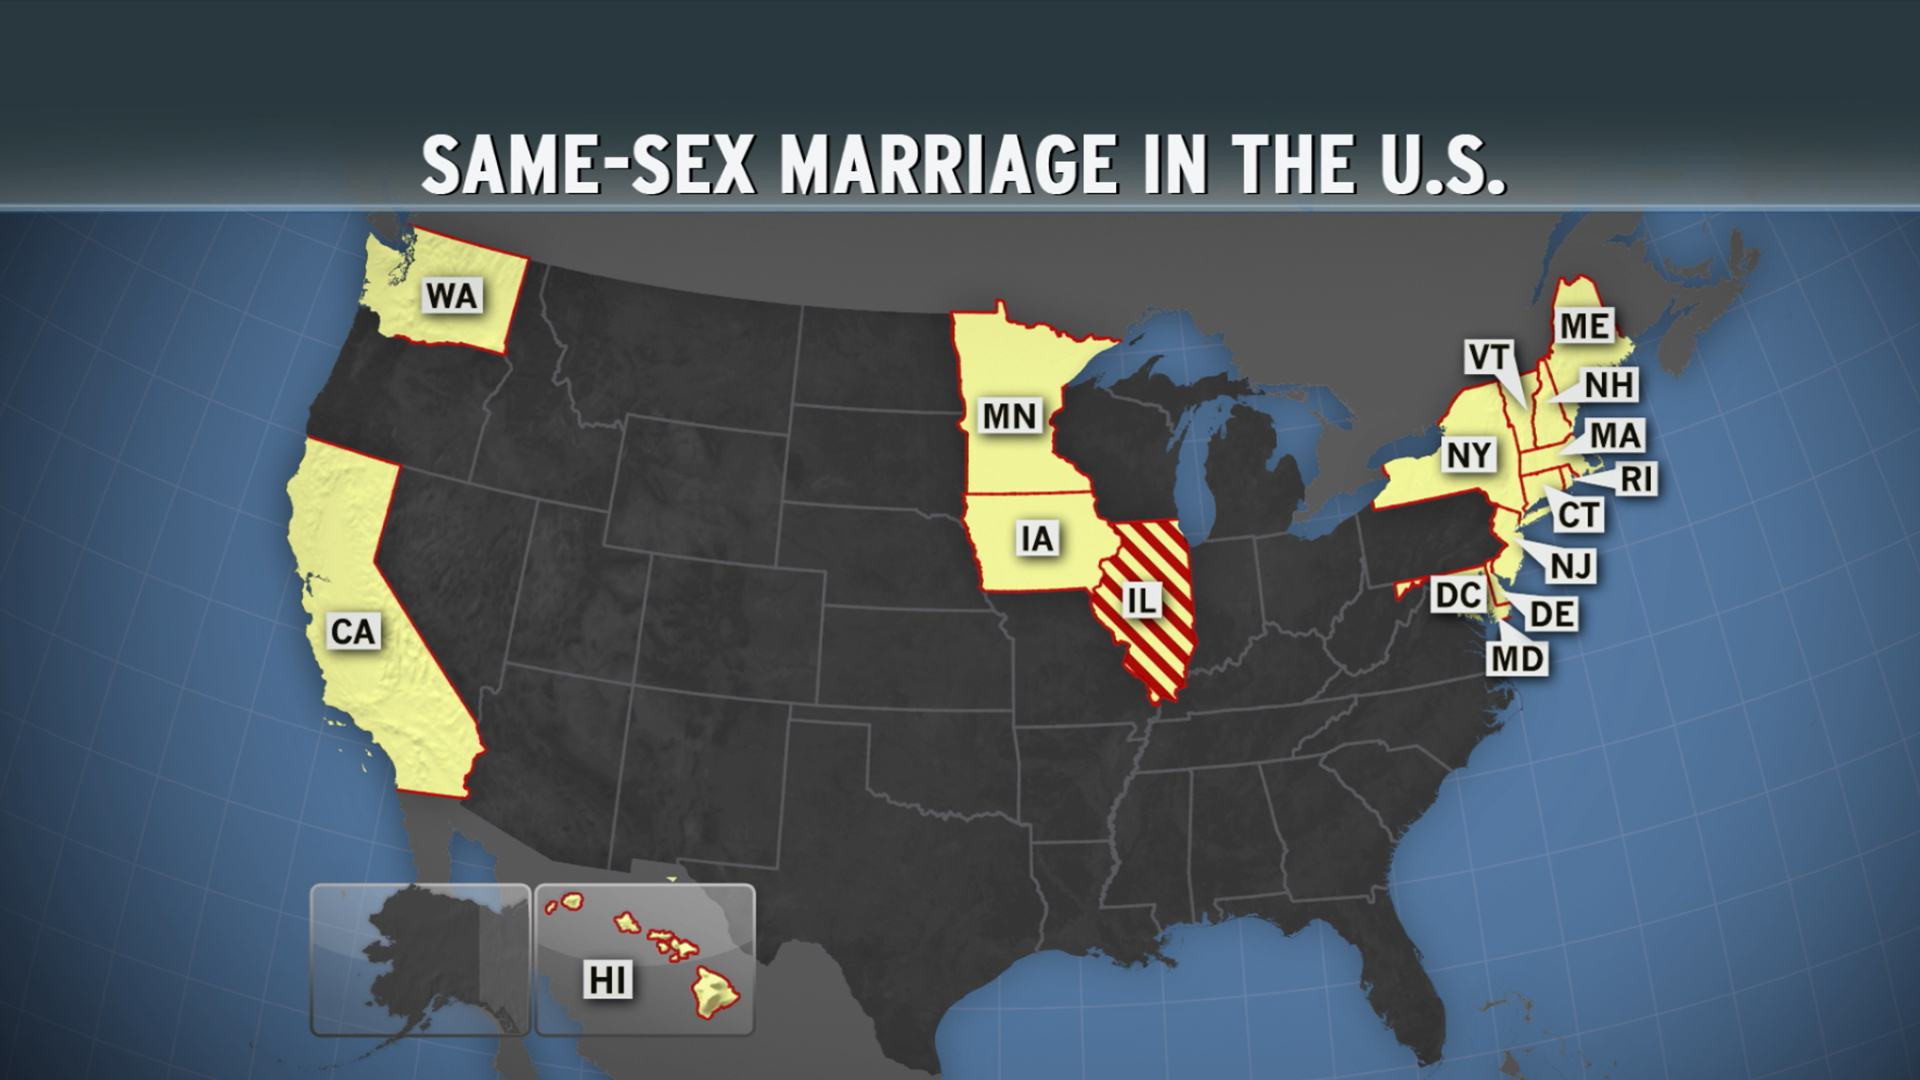 When will equality come to red states?